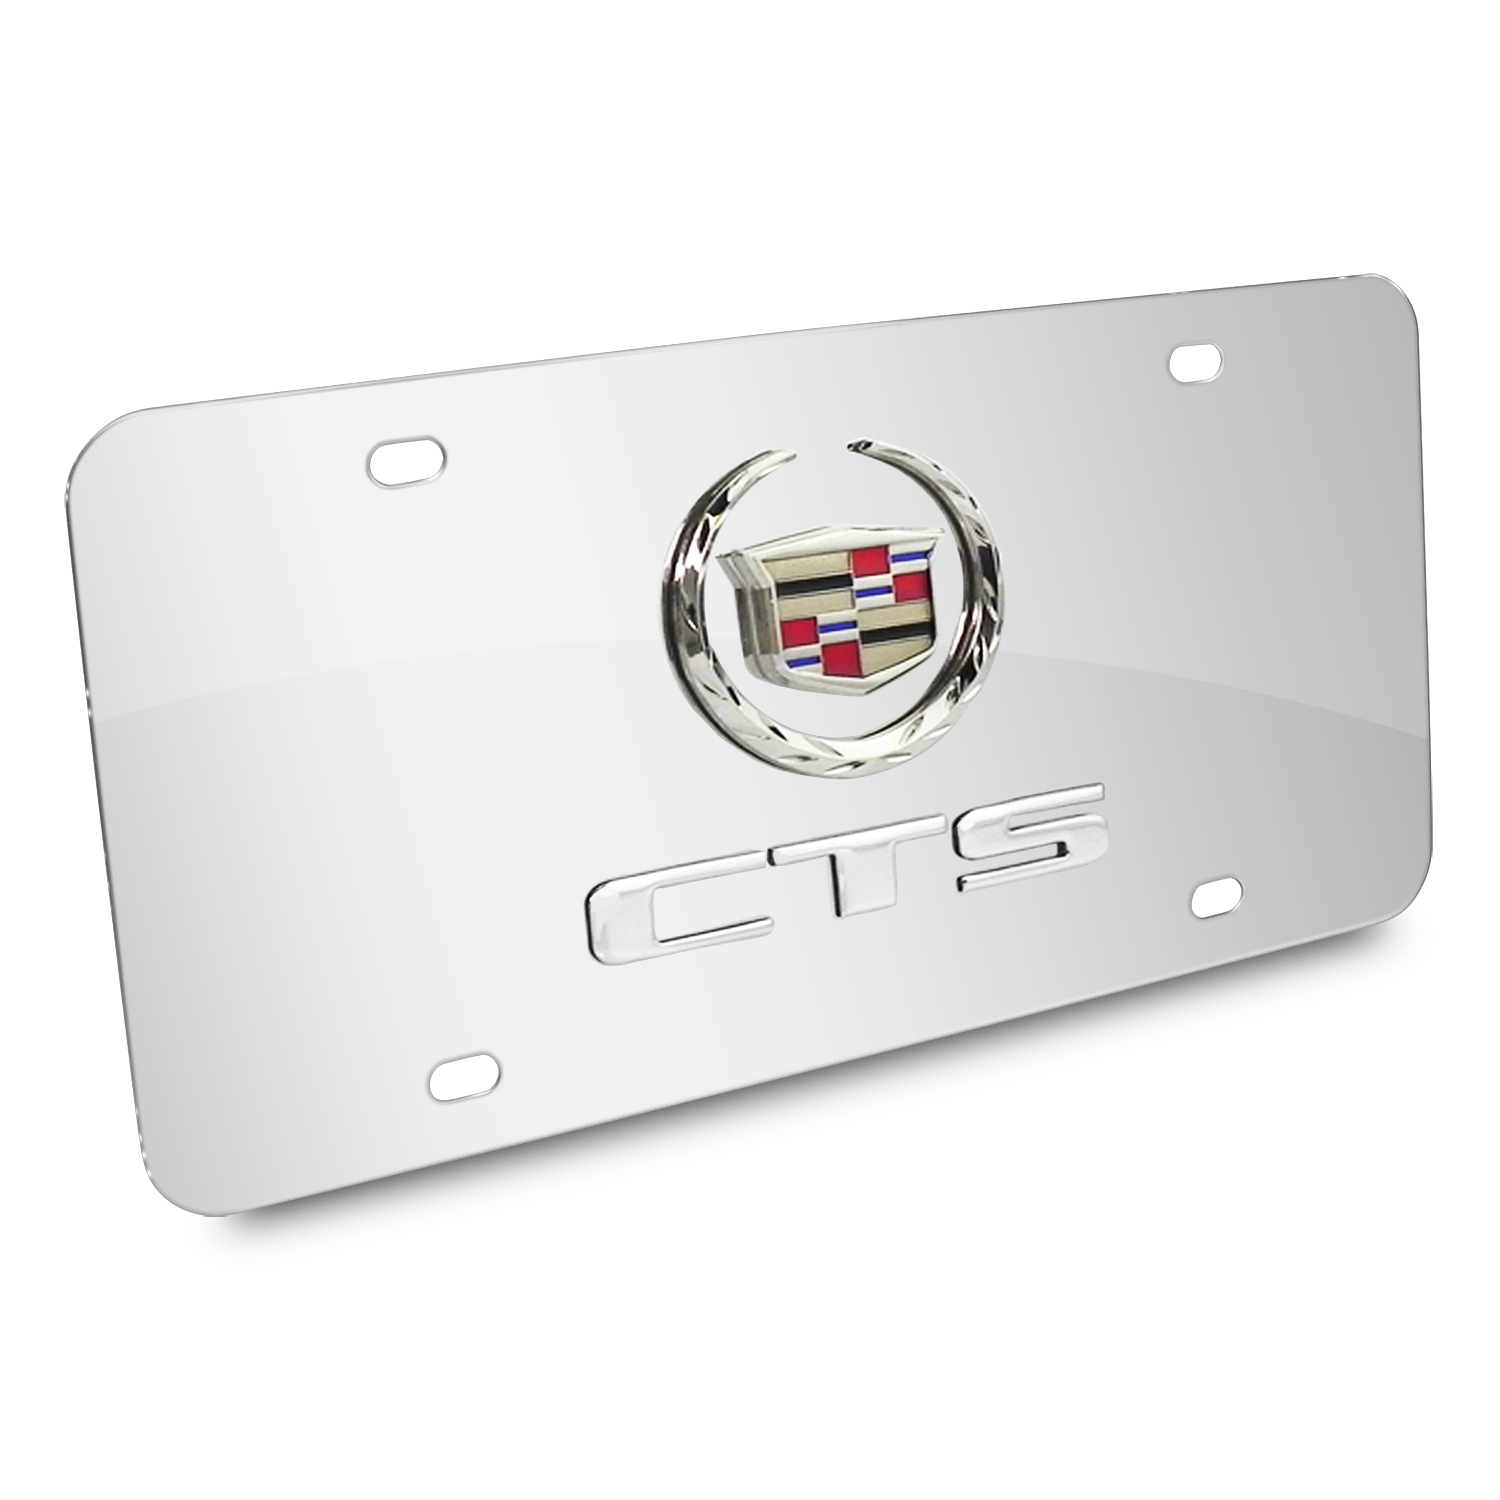 Cadillac CTS Double 3D Logo Chrome Stainless Steel License Plate